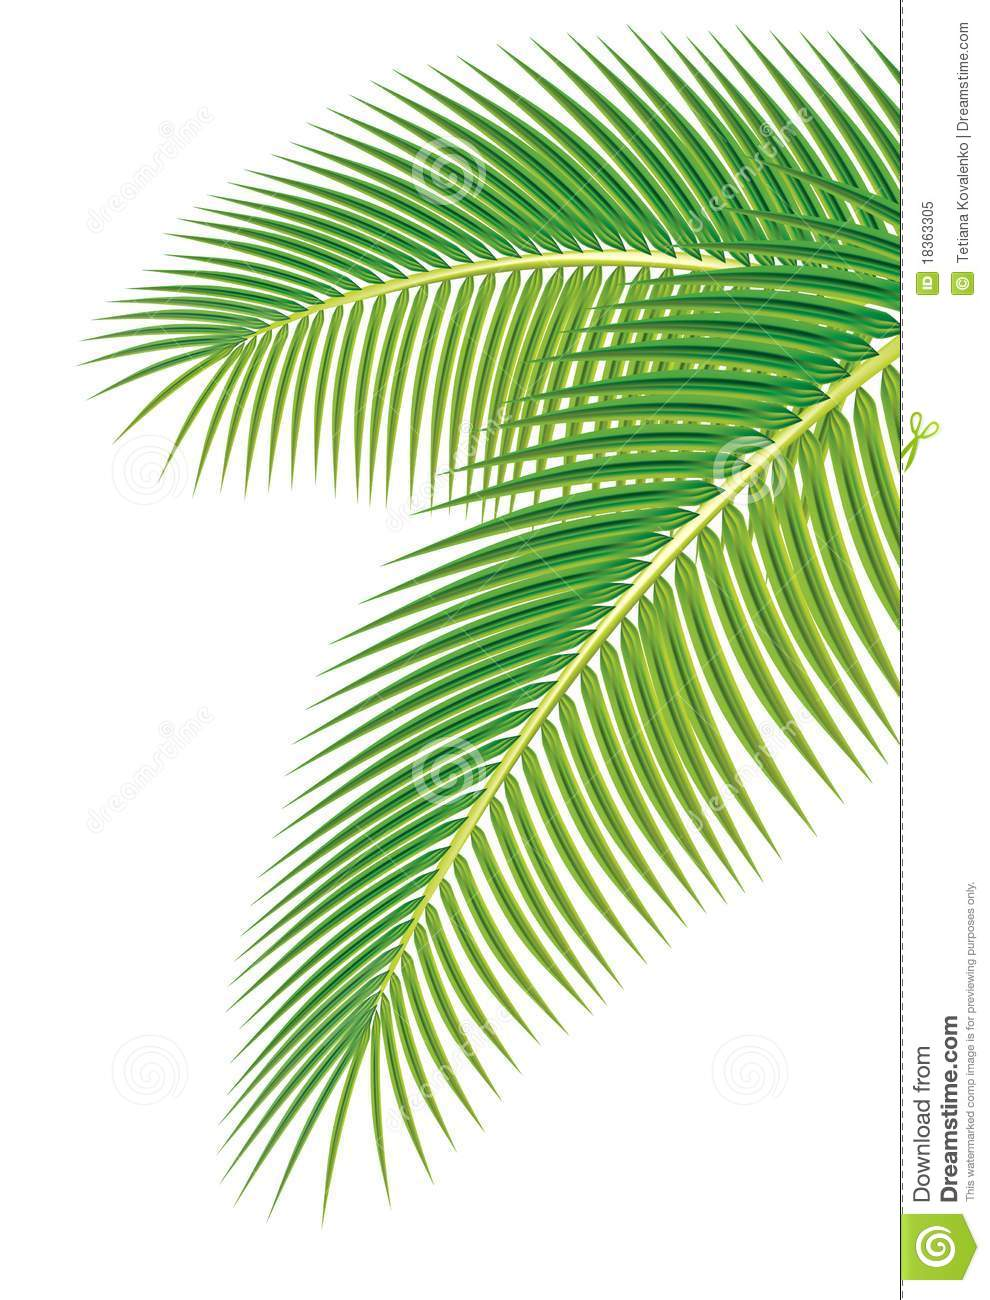 Palm leaves clipart #8